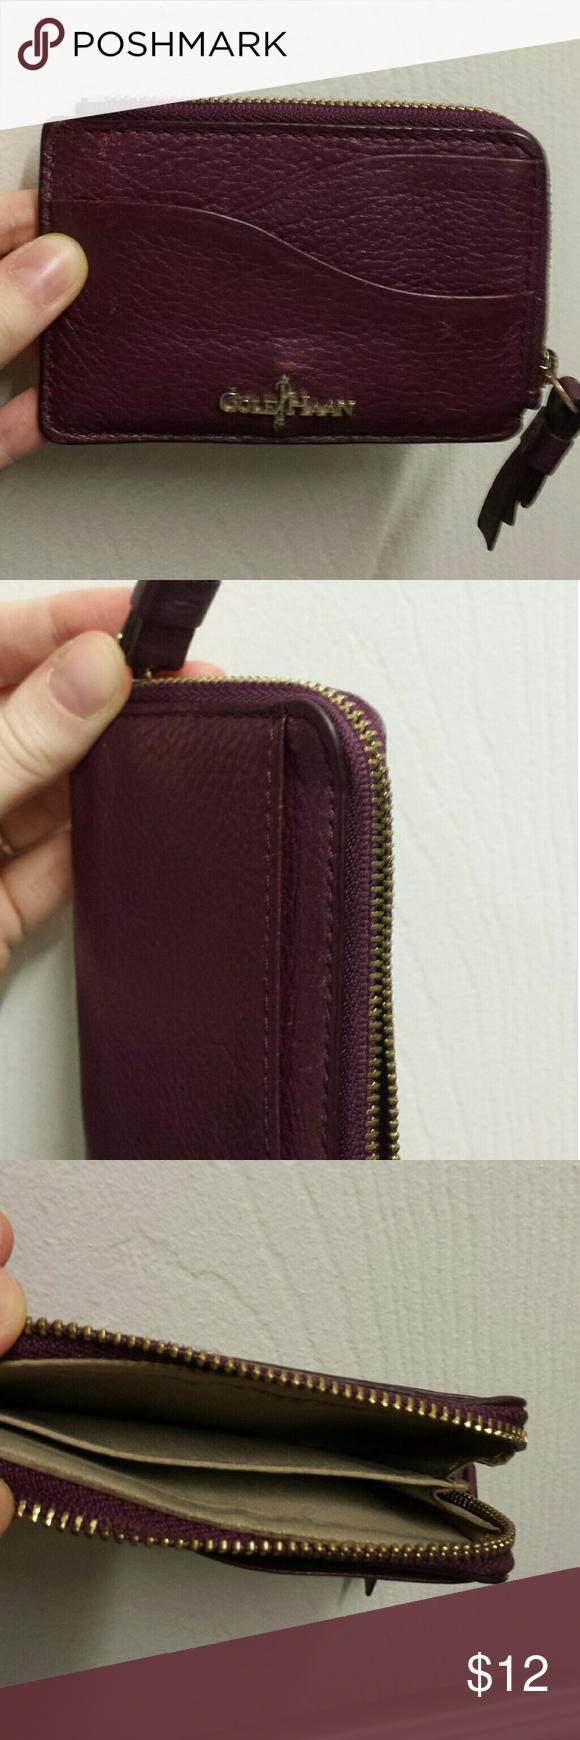 Cole Haan Card Holder | Cole haan, Key card holder and Coins